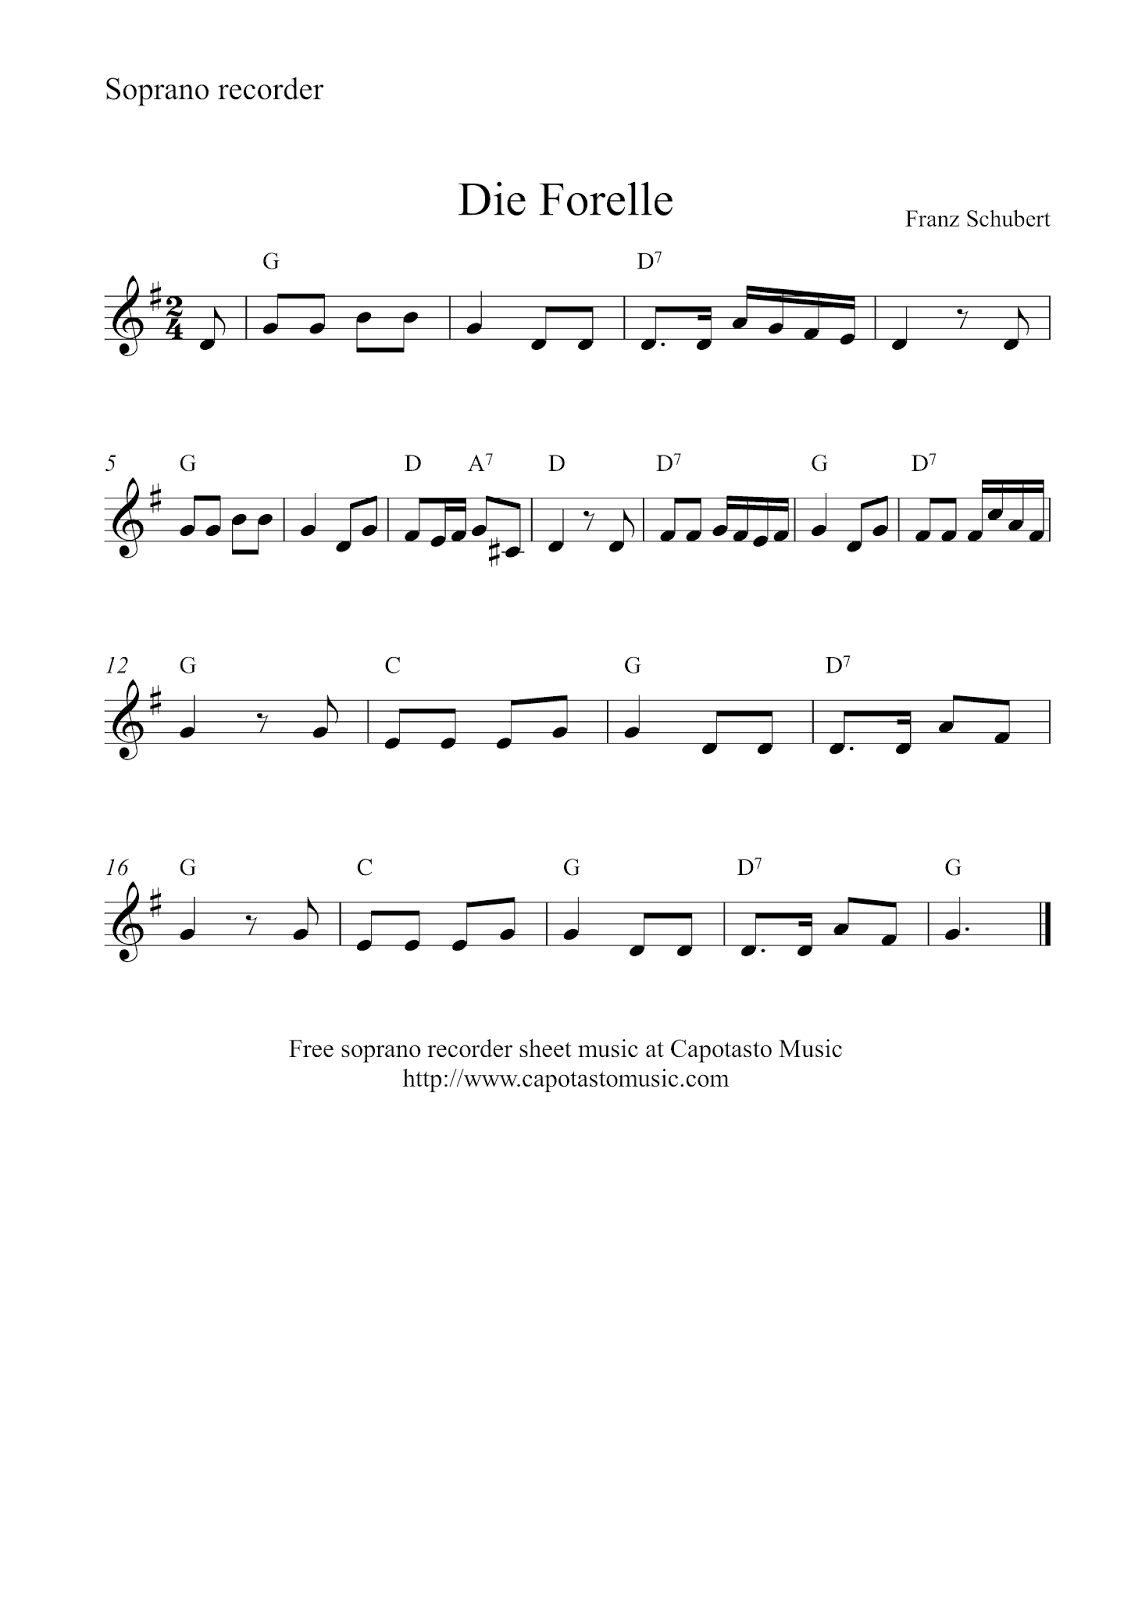 Free Easy Soprano Sheet Music, Die Forelle